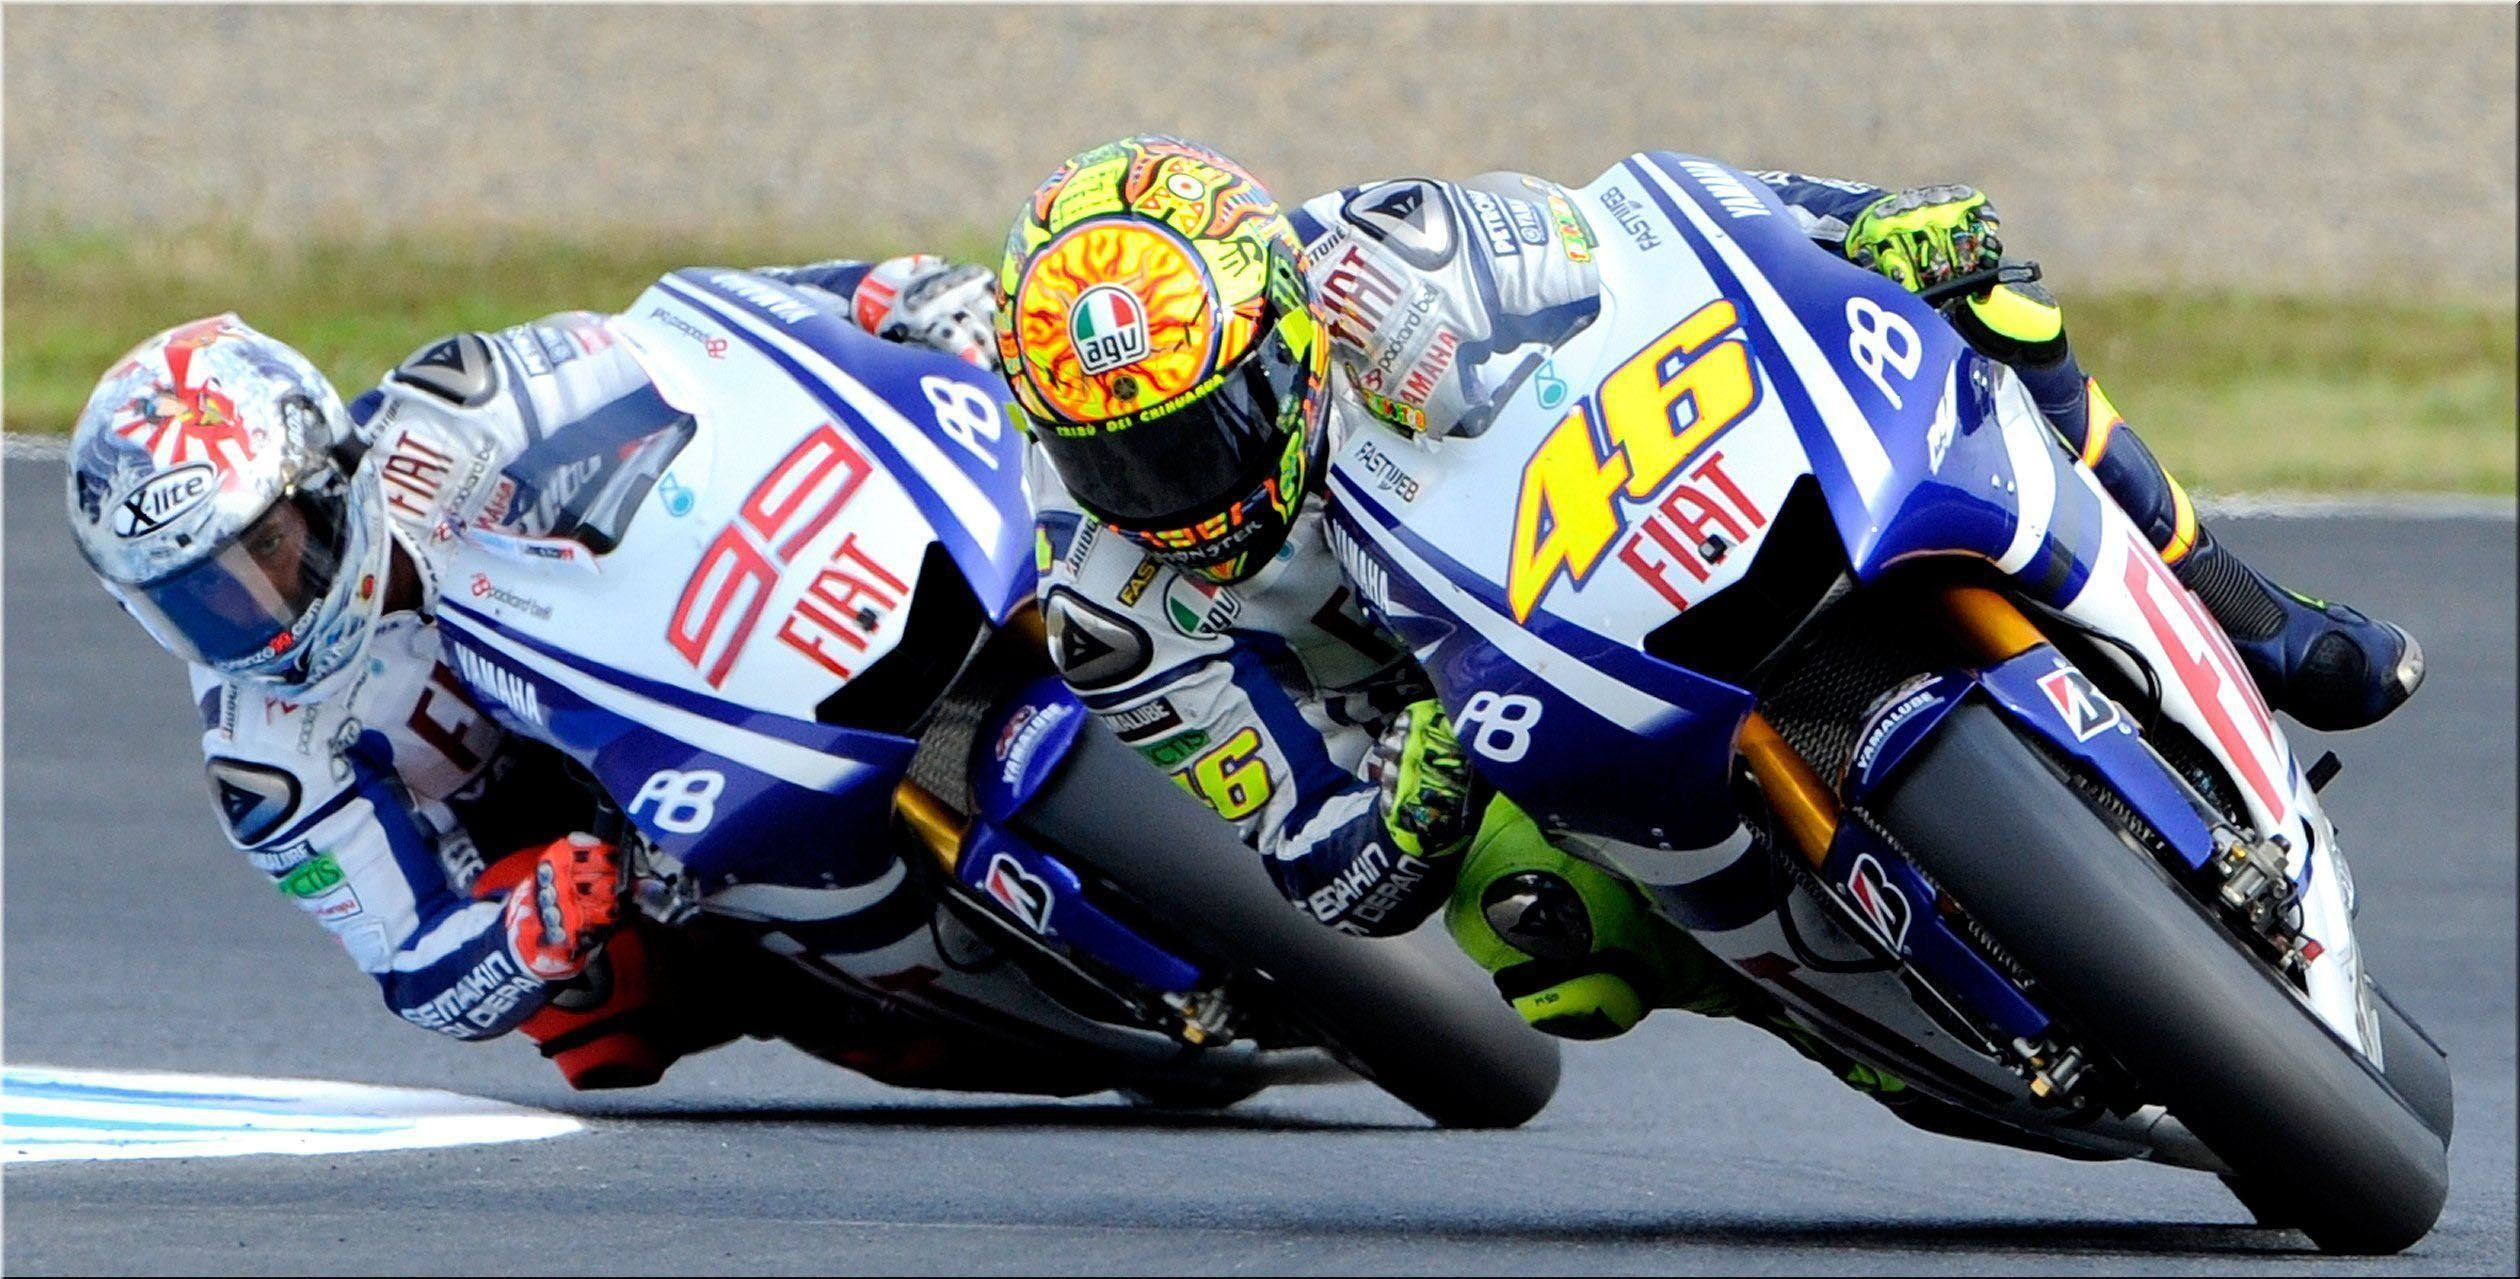 Valentino Rossi Wallpaper HD (65+ Images